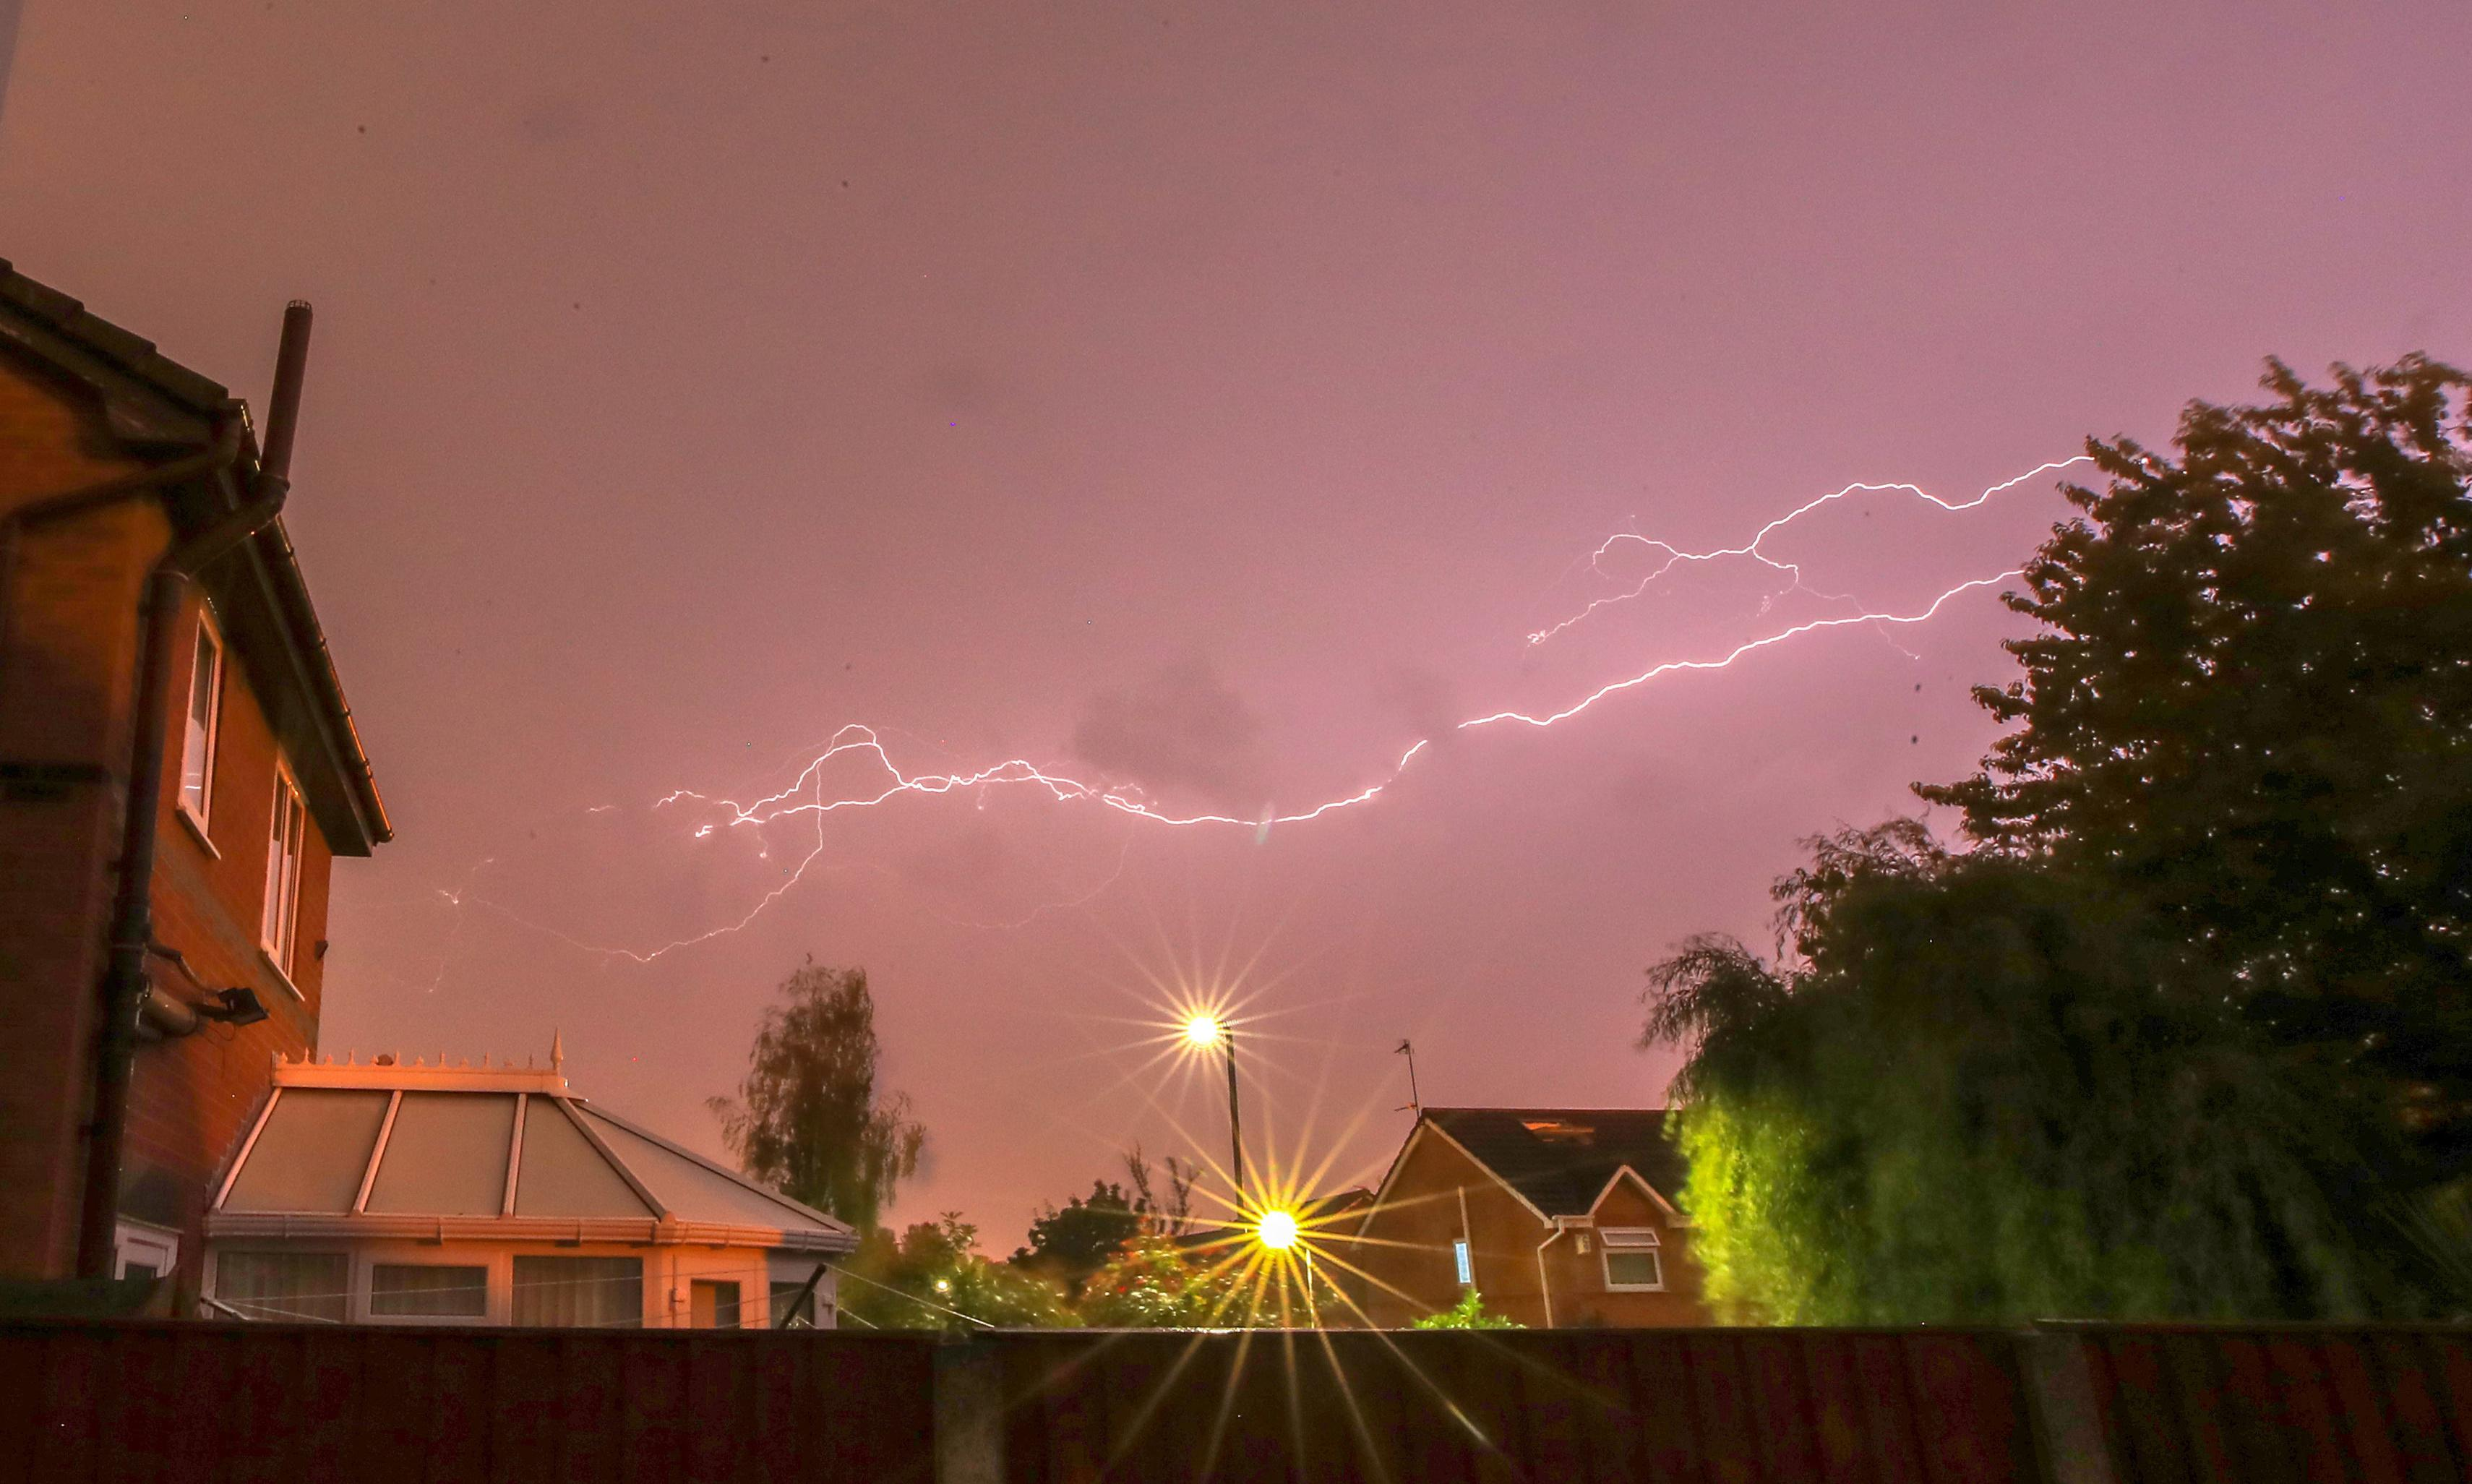 UK weather: lightning strikes as hottest day on record looms